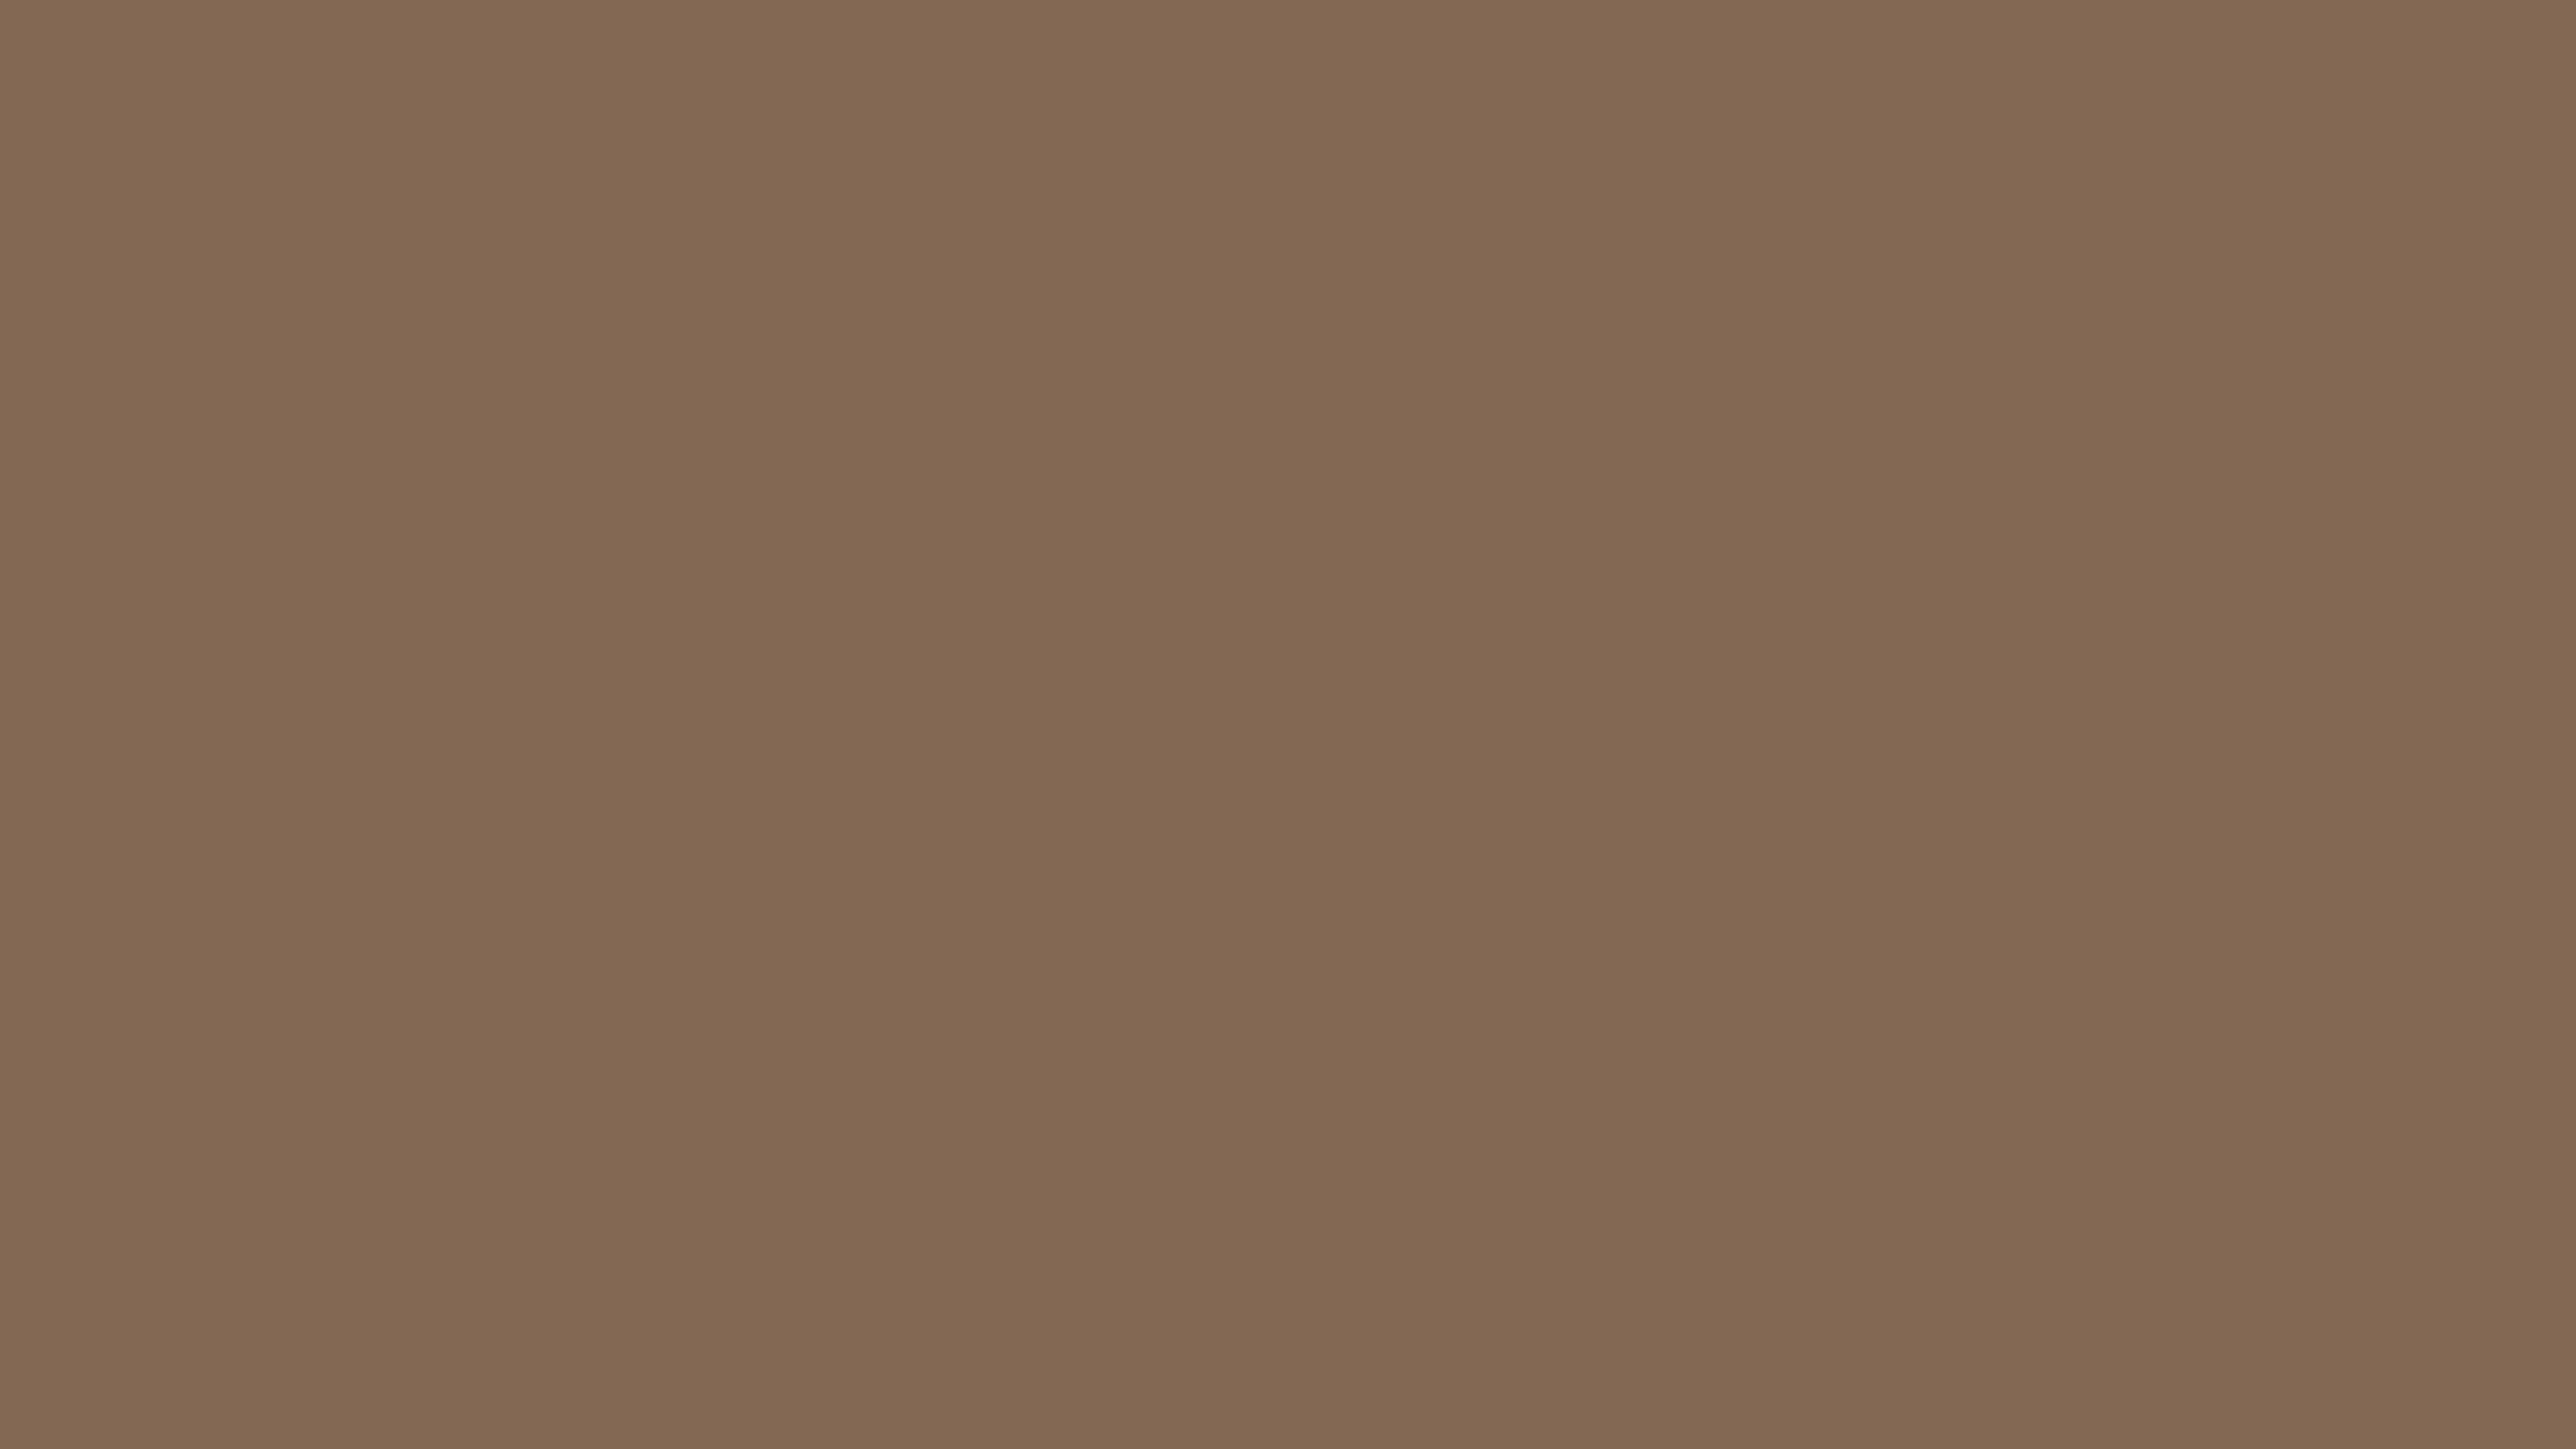 7680x4320 Pastel Brown Solid Color Background